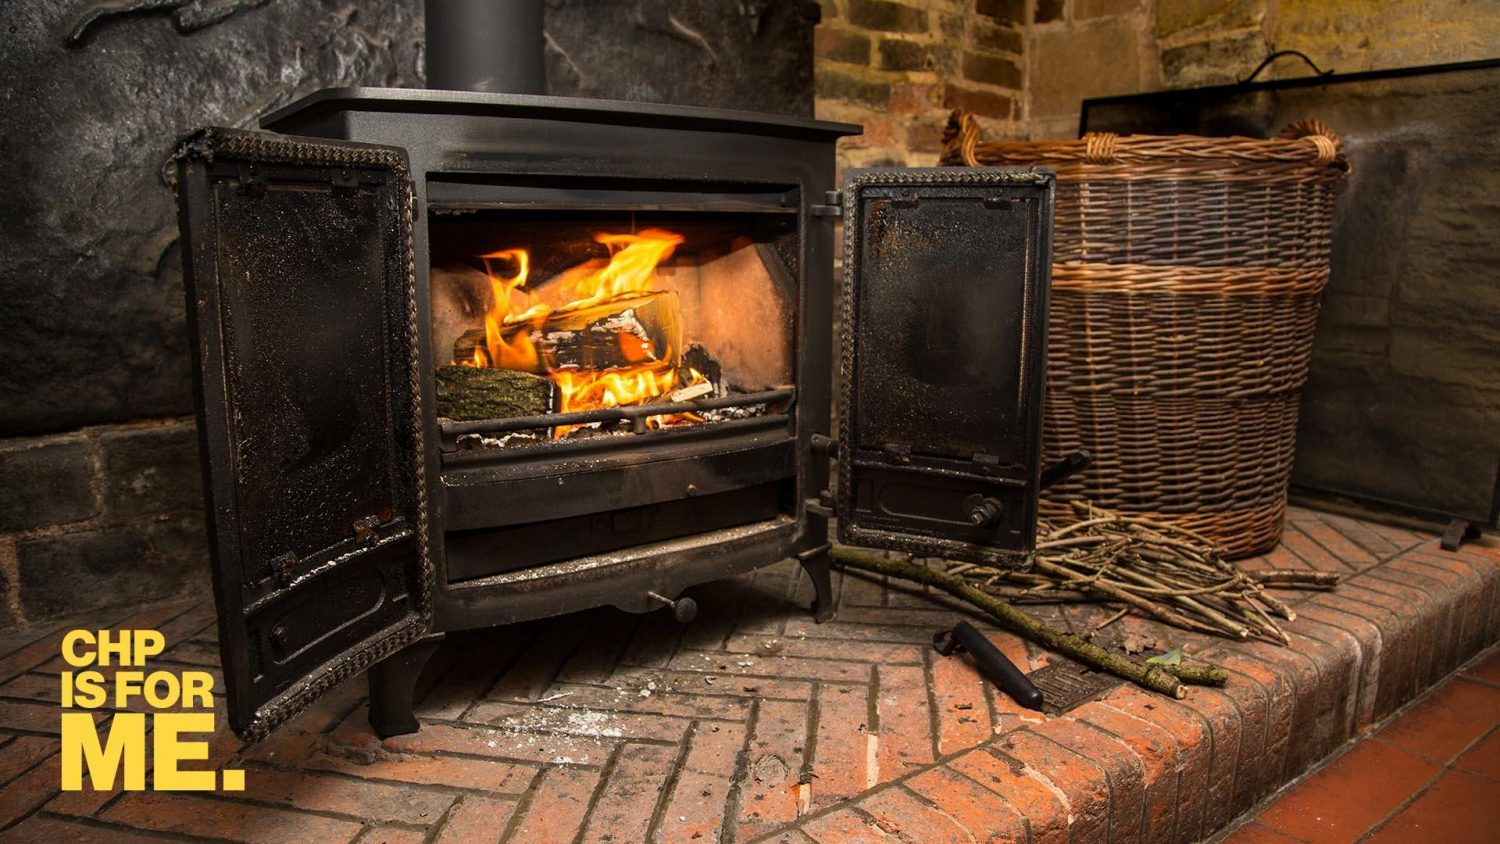 How Wood-Burning Stoves Can Affect Your Health